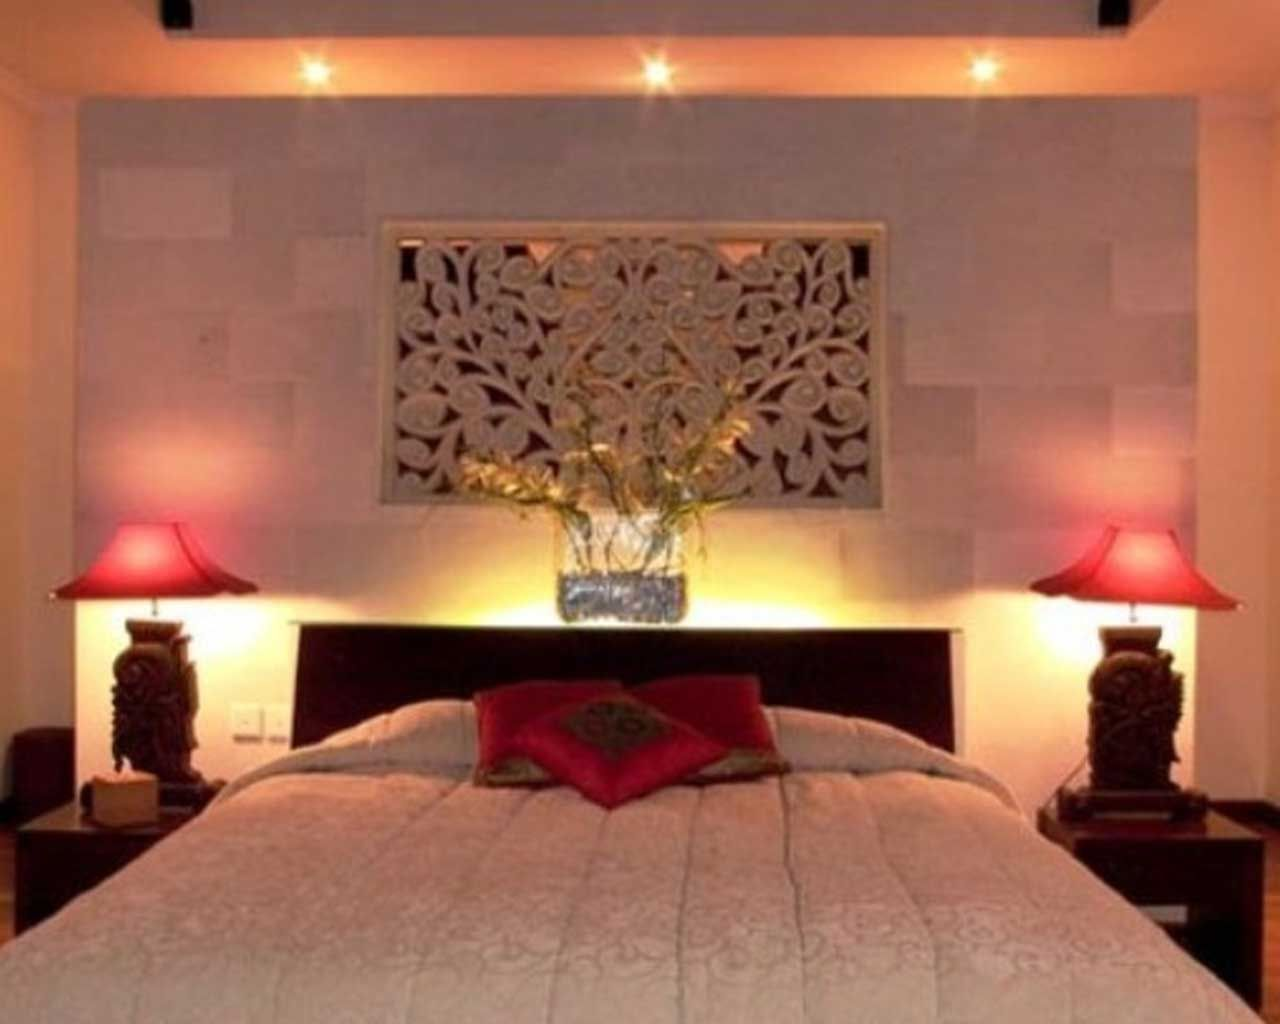 Romantic bedroom decor - Romantic Bedroom Decor Ideas Best Romantic Bedroom Lighting Ideas Hot Style Design